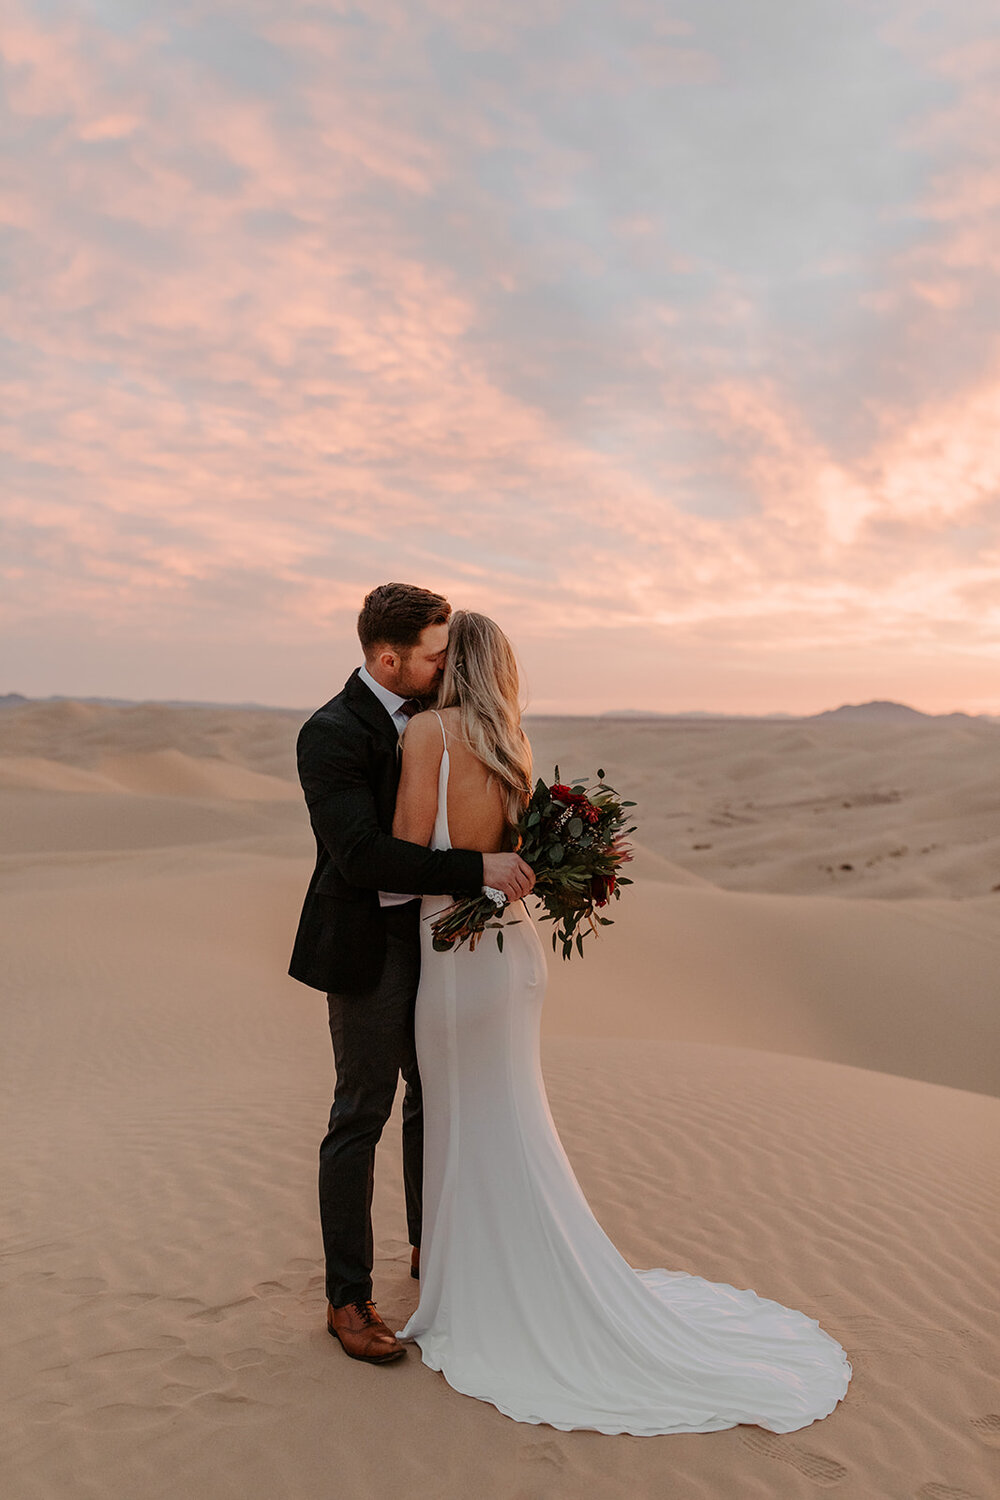 Our Brilliant Bride Riley | Imperial Sand Dunes. Mobile Image